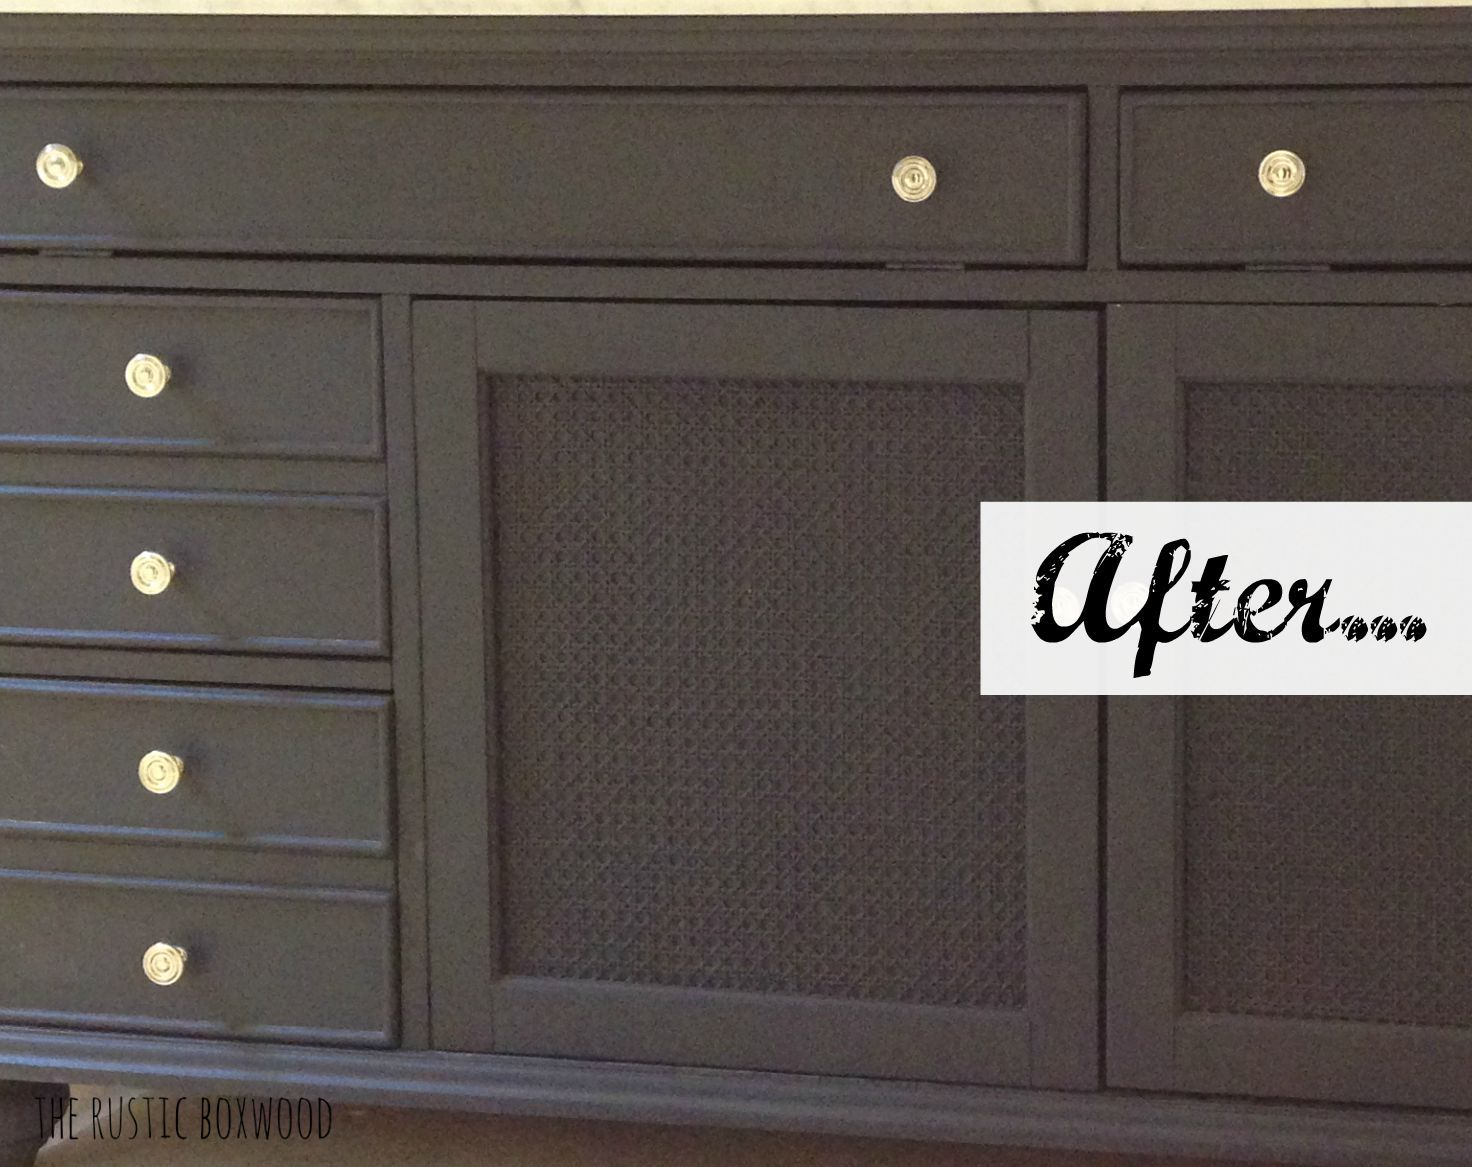 Bathroom Makeovers With Chalk Paint diy chalk-painted bathroom vanity makeover   the rustic boxwood